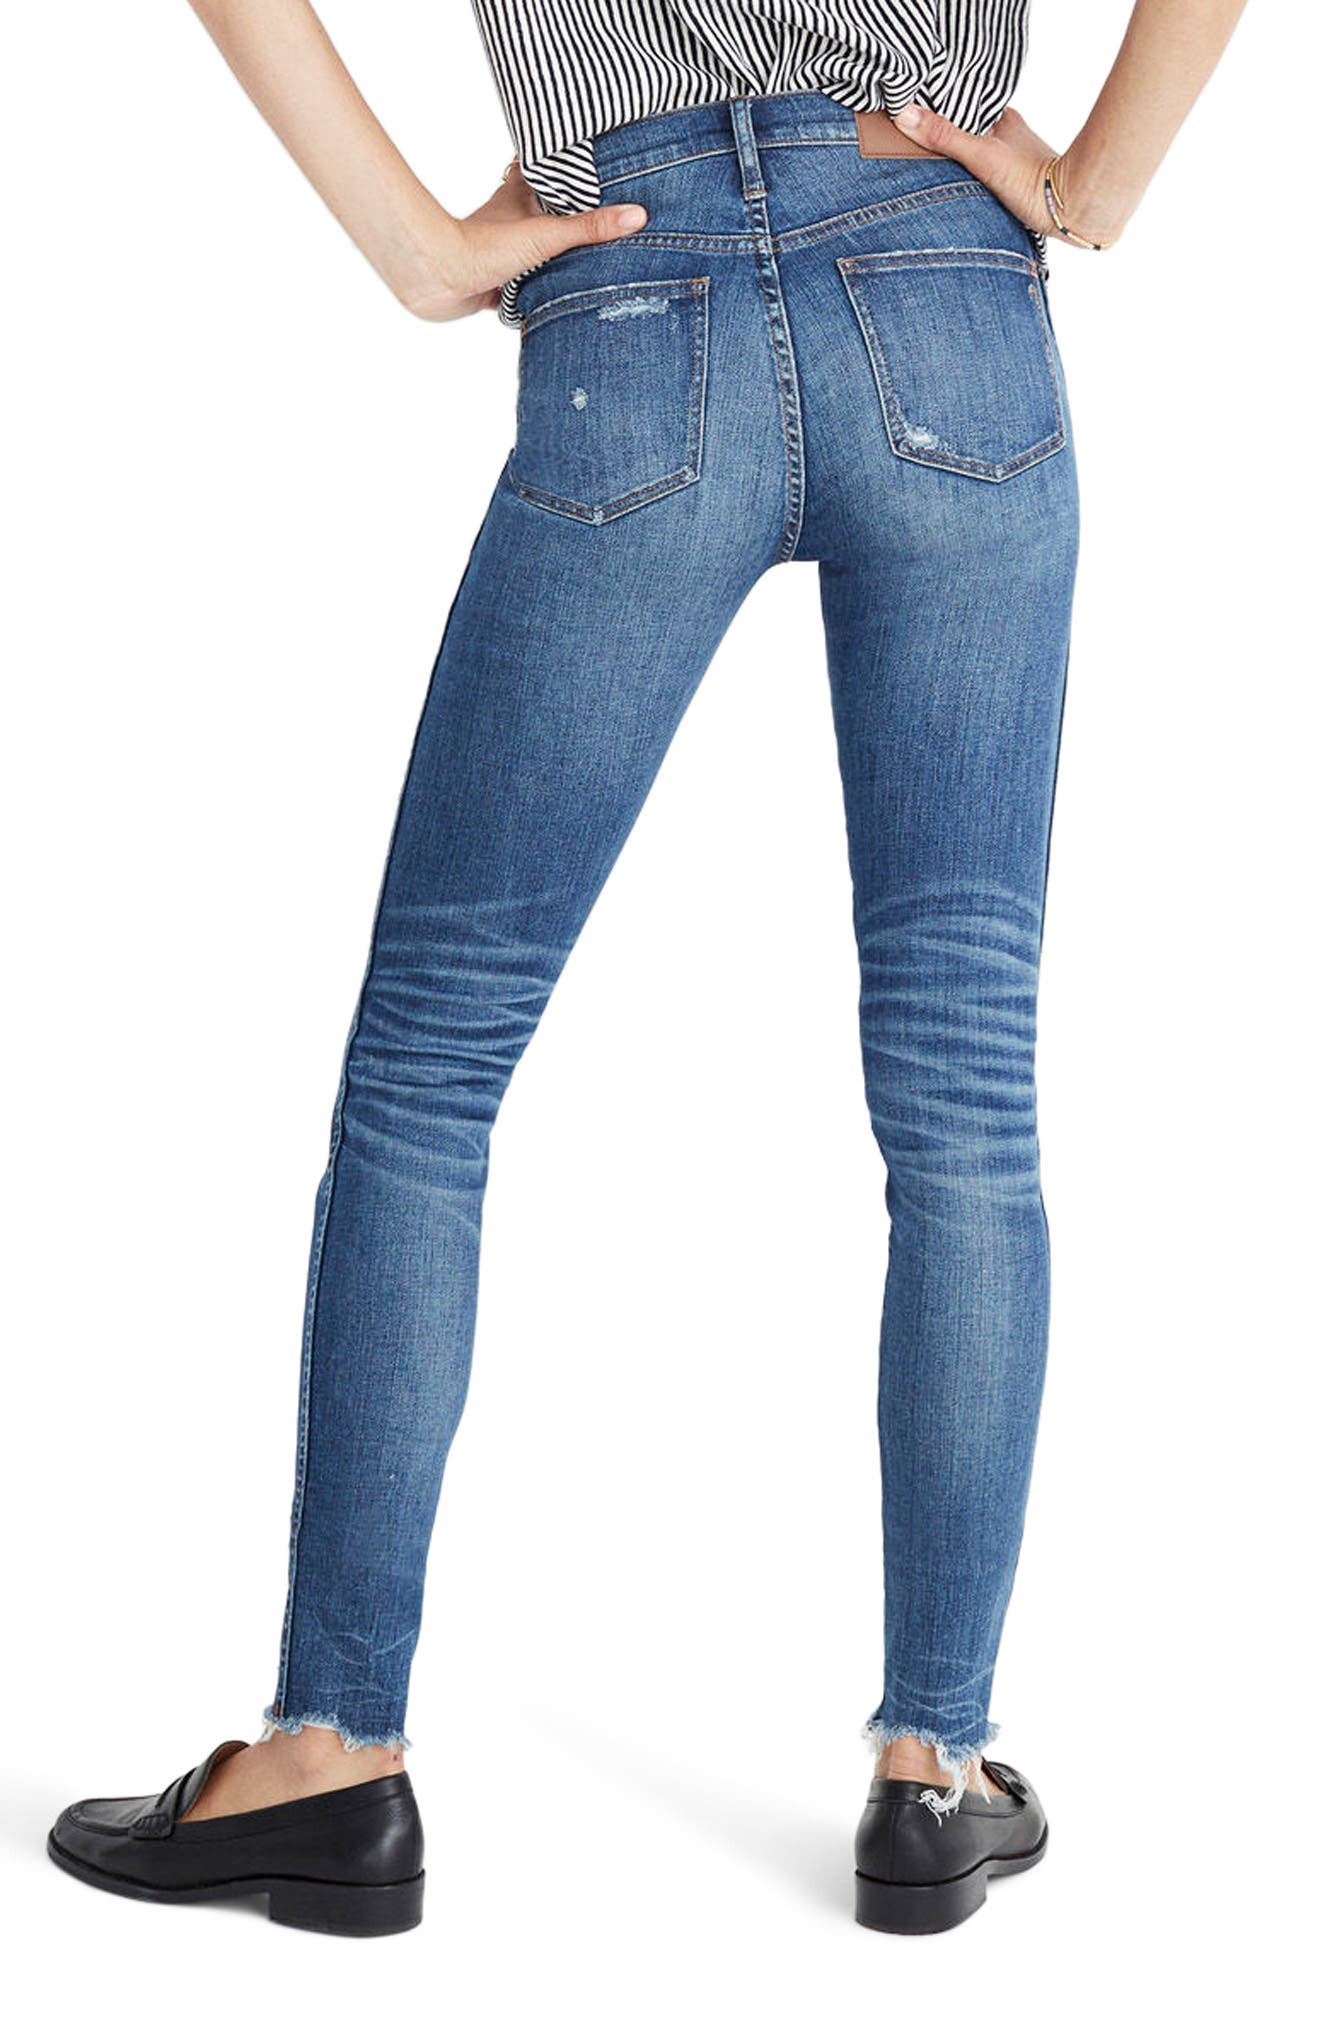 9-Inch High Waist Ankle Skinny Jeans,                             Alternate thumbnail 2, color,                             Allegra